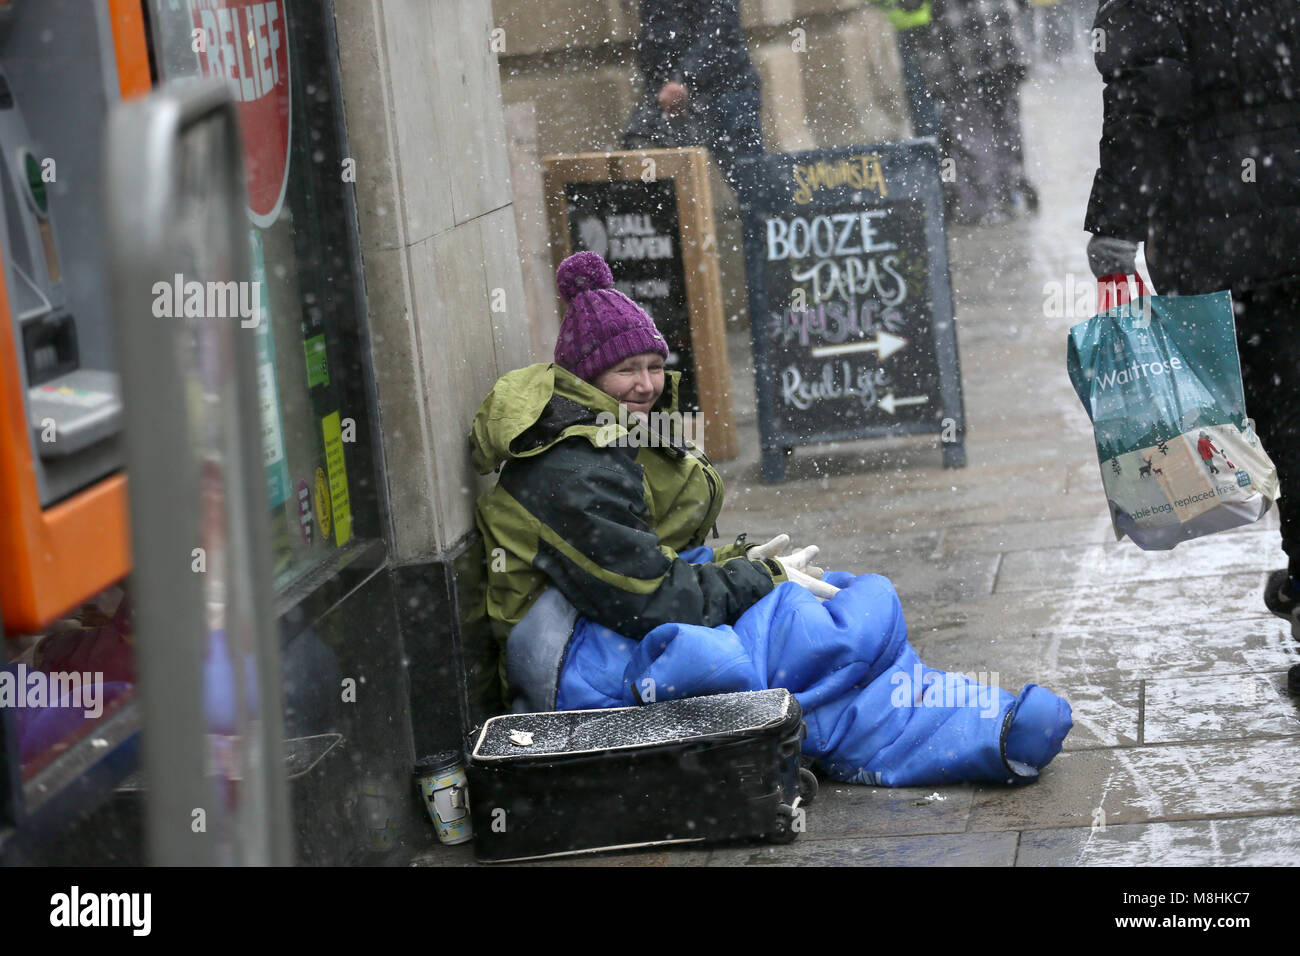 Manchester, UK, 17 Mar 2018. A homeless women sitting on the pavement during snow,  Manchester, 16th March, 2018 - Stock Image